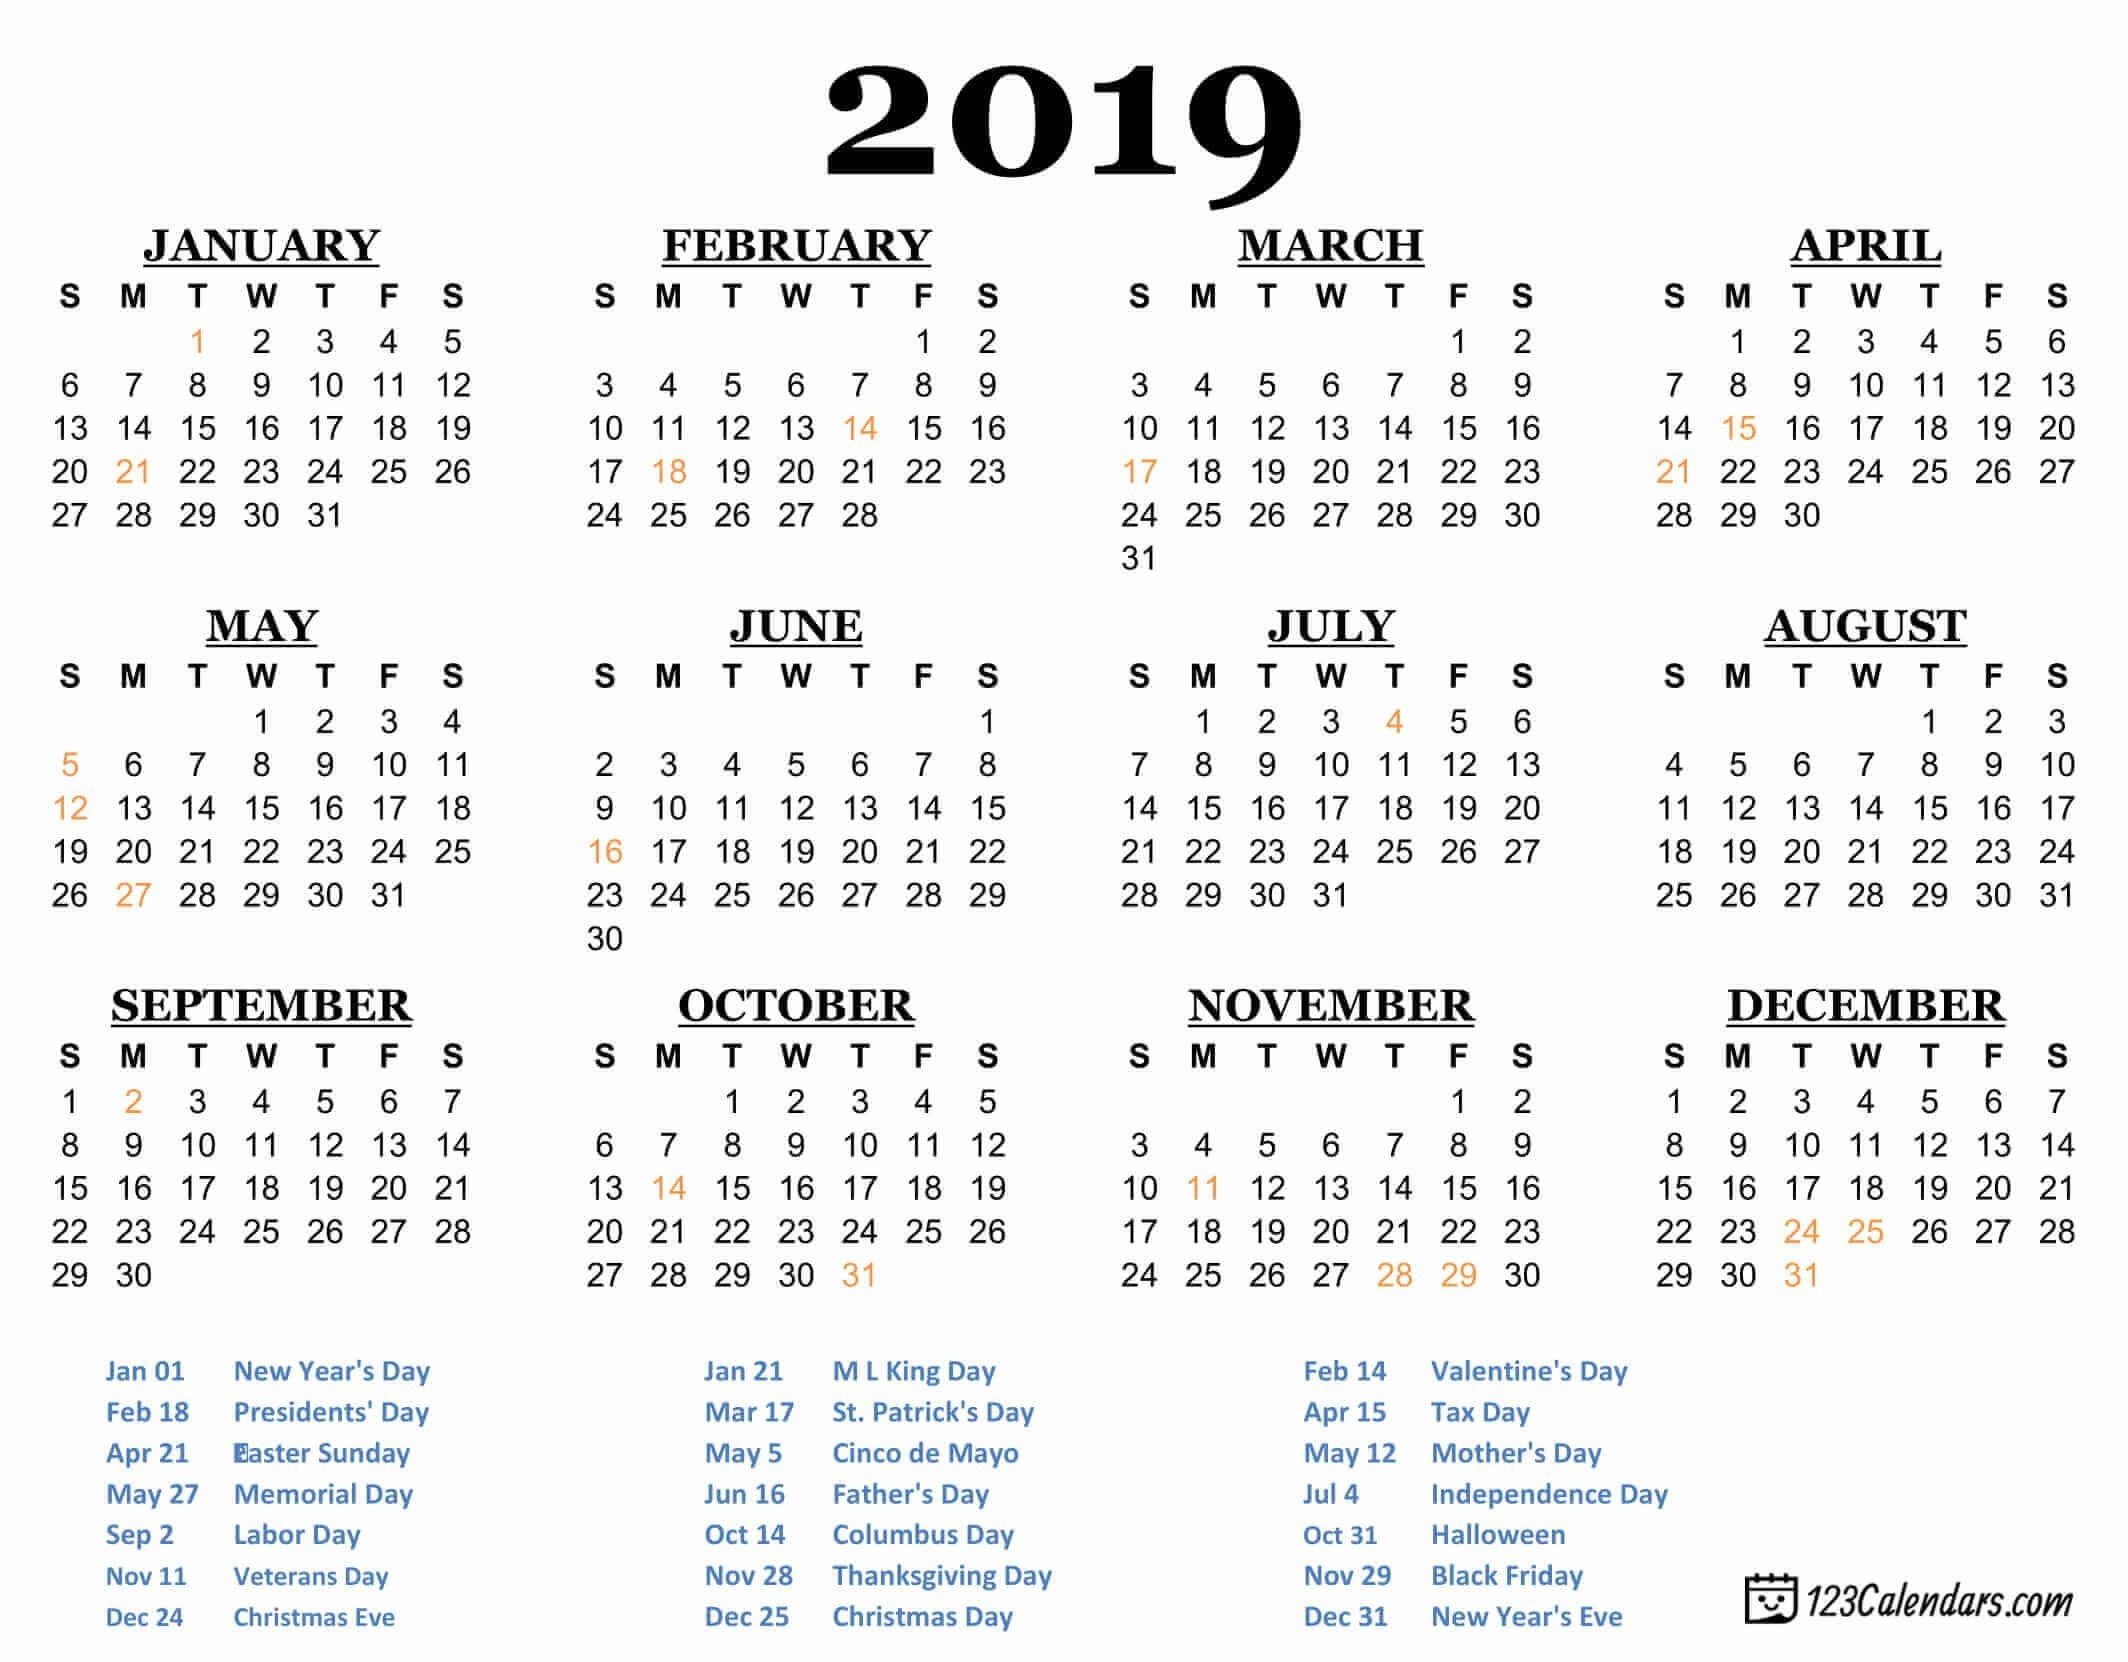 2019 Printable Calendar - 123Calendars Picture Of A 2019 Calendar